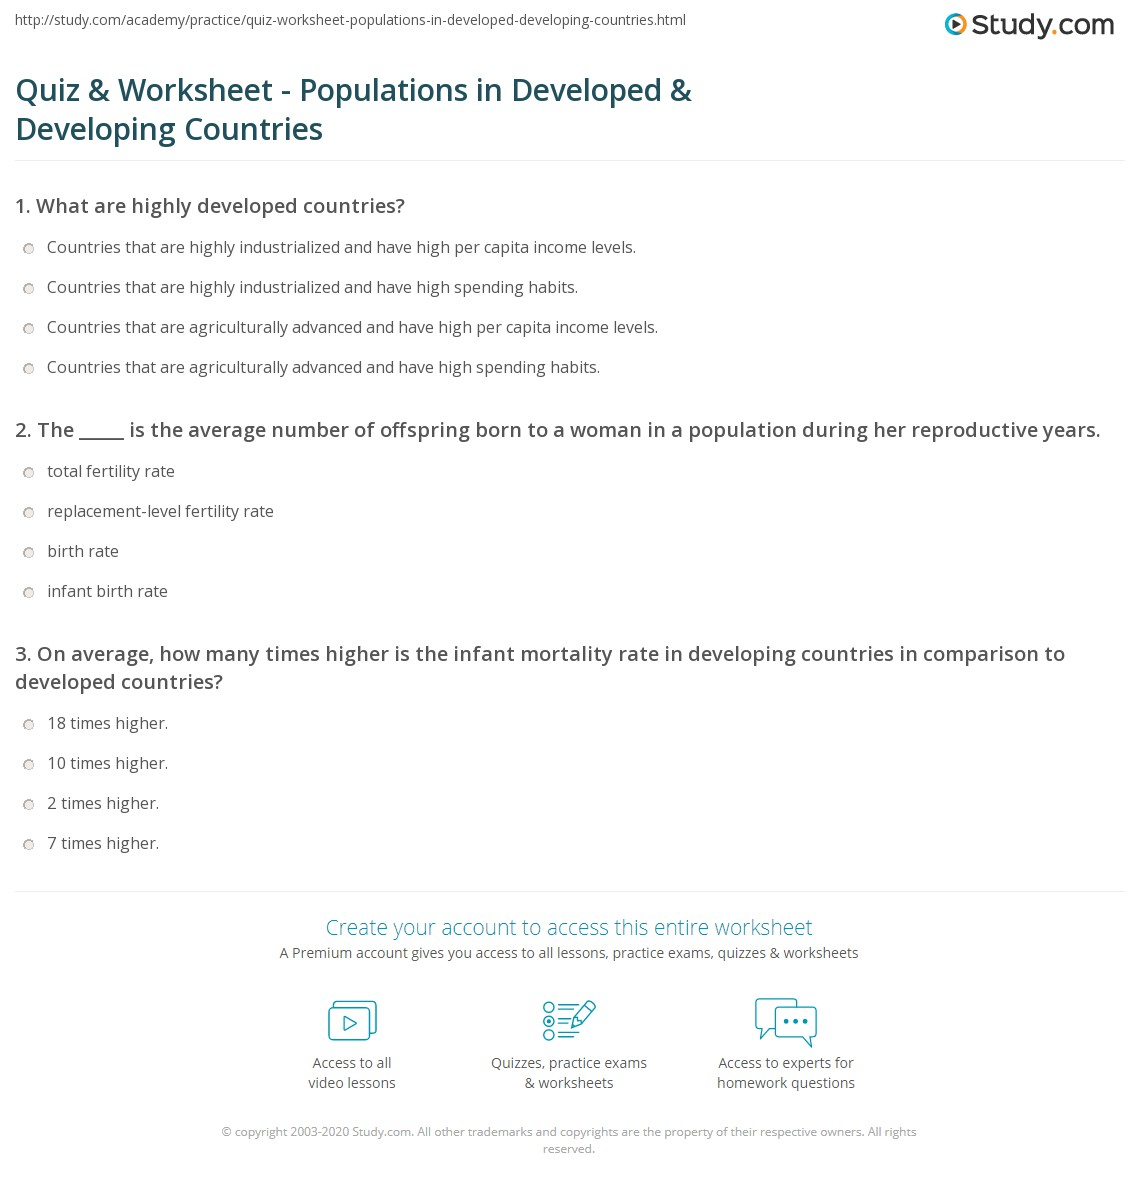 Quiz Worksheet Populations In Developed Developing Countries